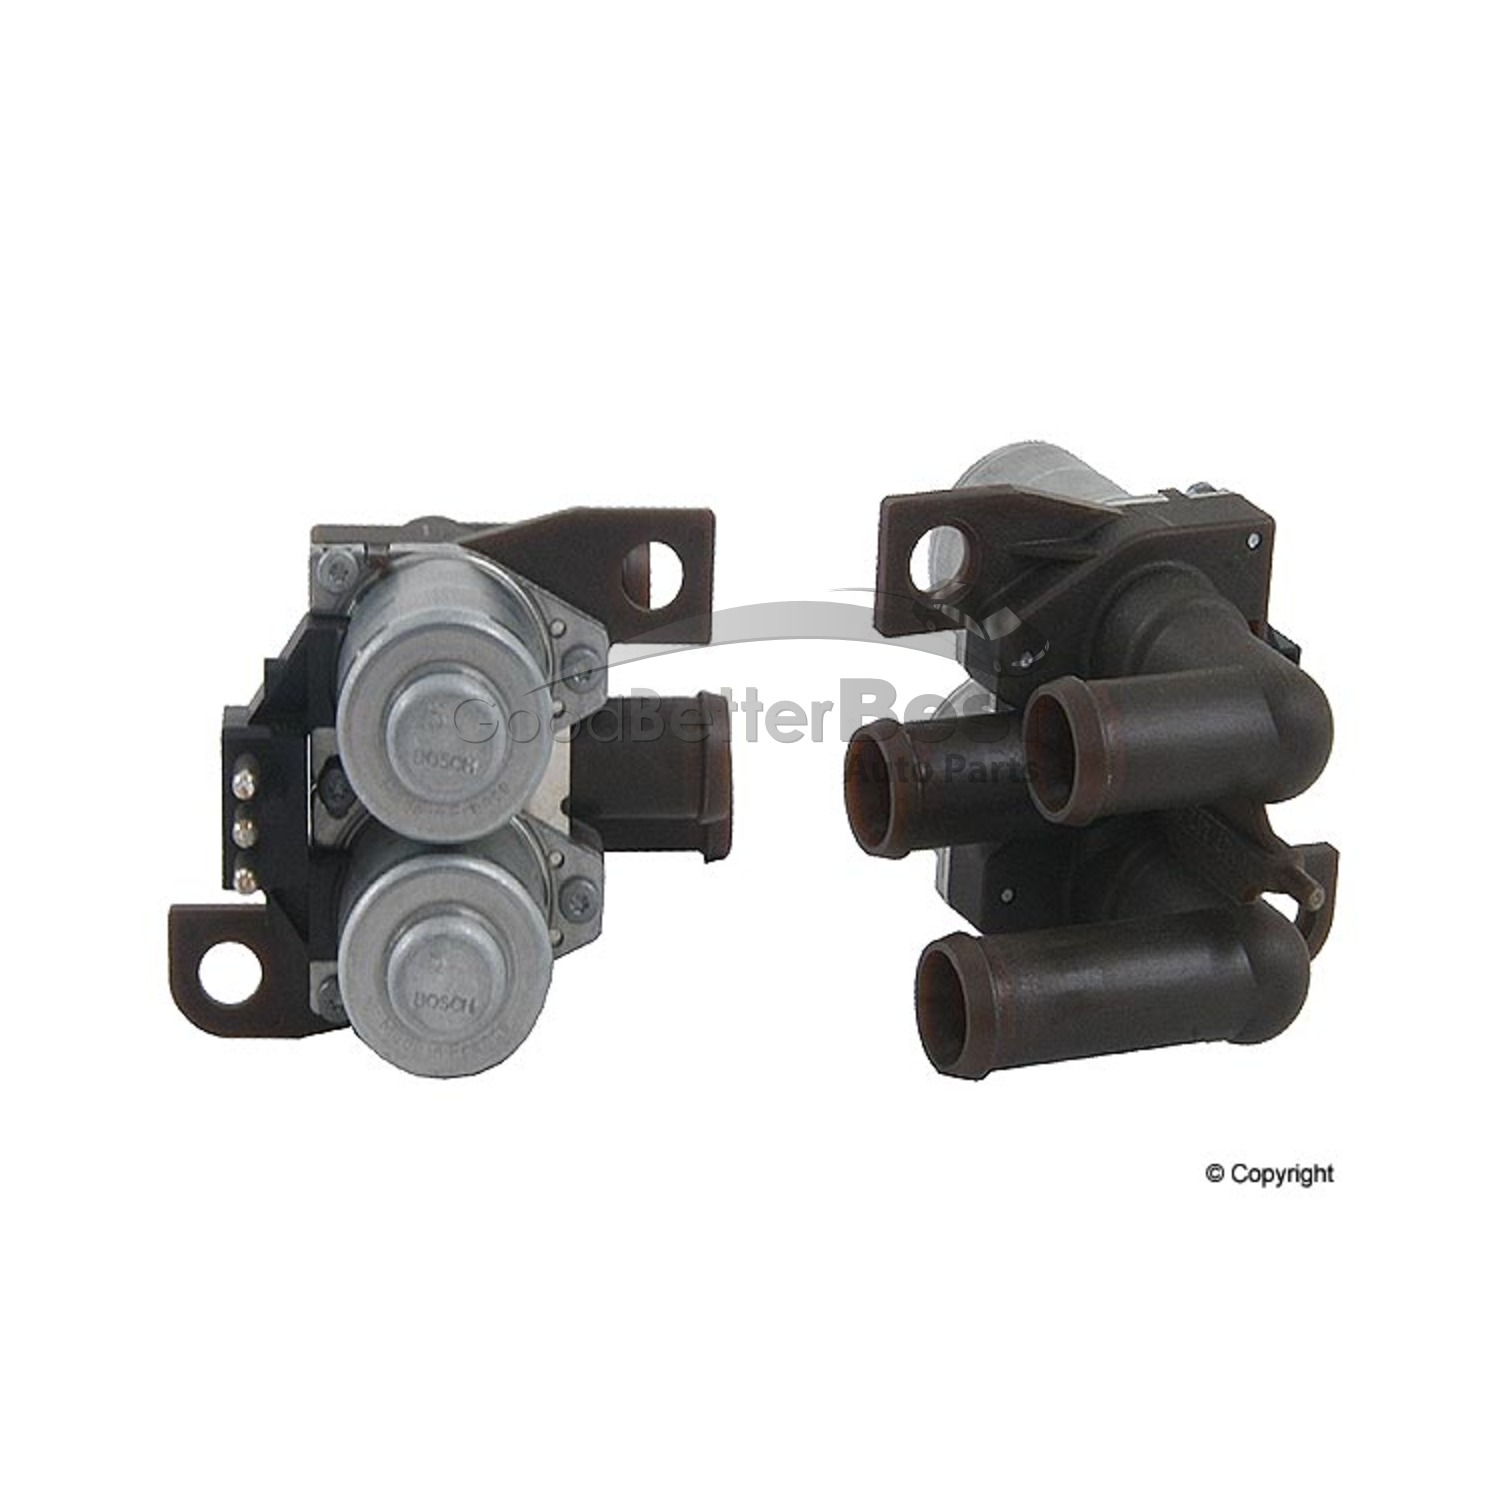 One New Genuine HVAC Heater Control Valve 2118320684 for Mercedes MB